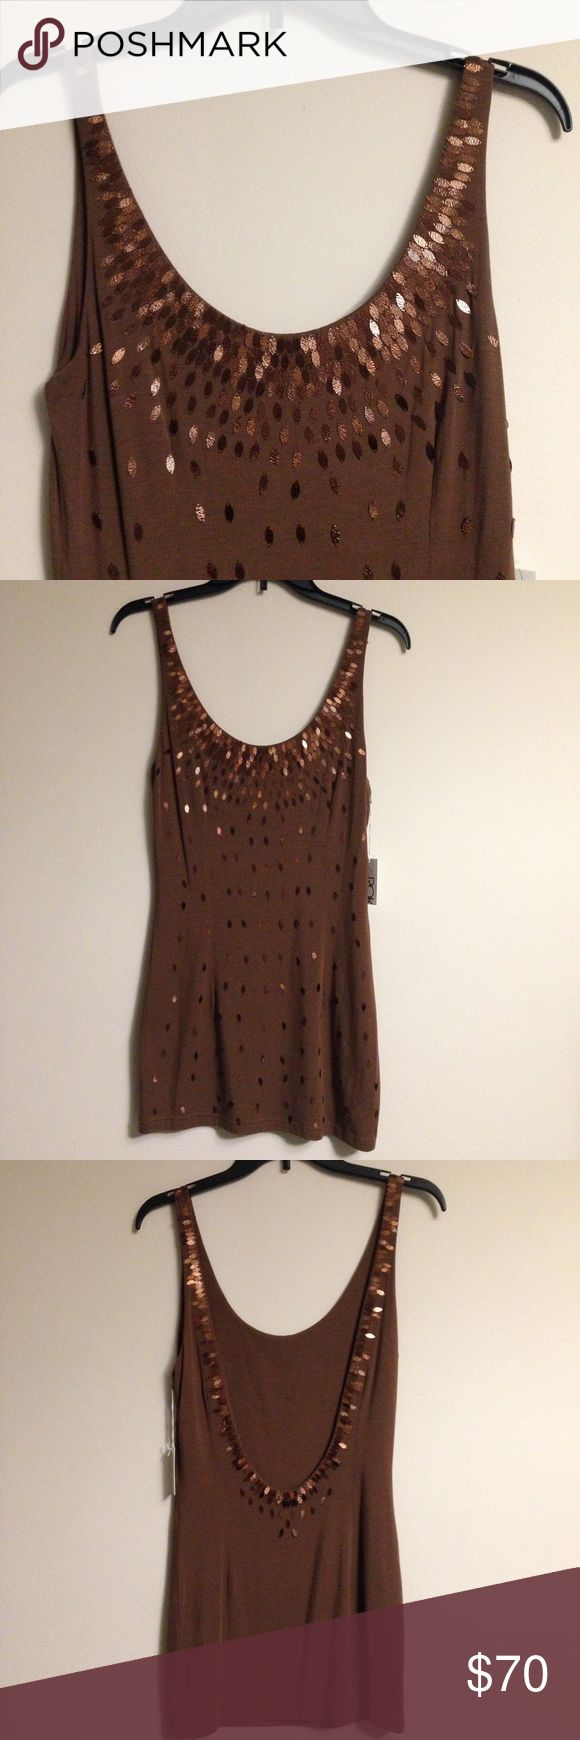 "LaRok Tank Top Brown Embellished Camisole La Rok Tank Top Brown Embellished Camisole. Bronze Sequin Top (back and Front). Length 32"", Chest 16"". Stretchy Fabric. Low Cut Back. Retail $289.00 #0212171803 ✨Please keep in mind that measurements are provided only as a guide and are approximate.  Color appearance may vary depending on your monitor settings. LaRok Tops Tank Tops"